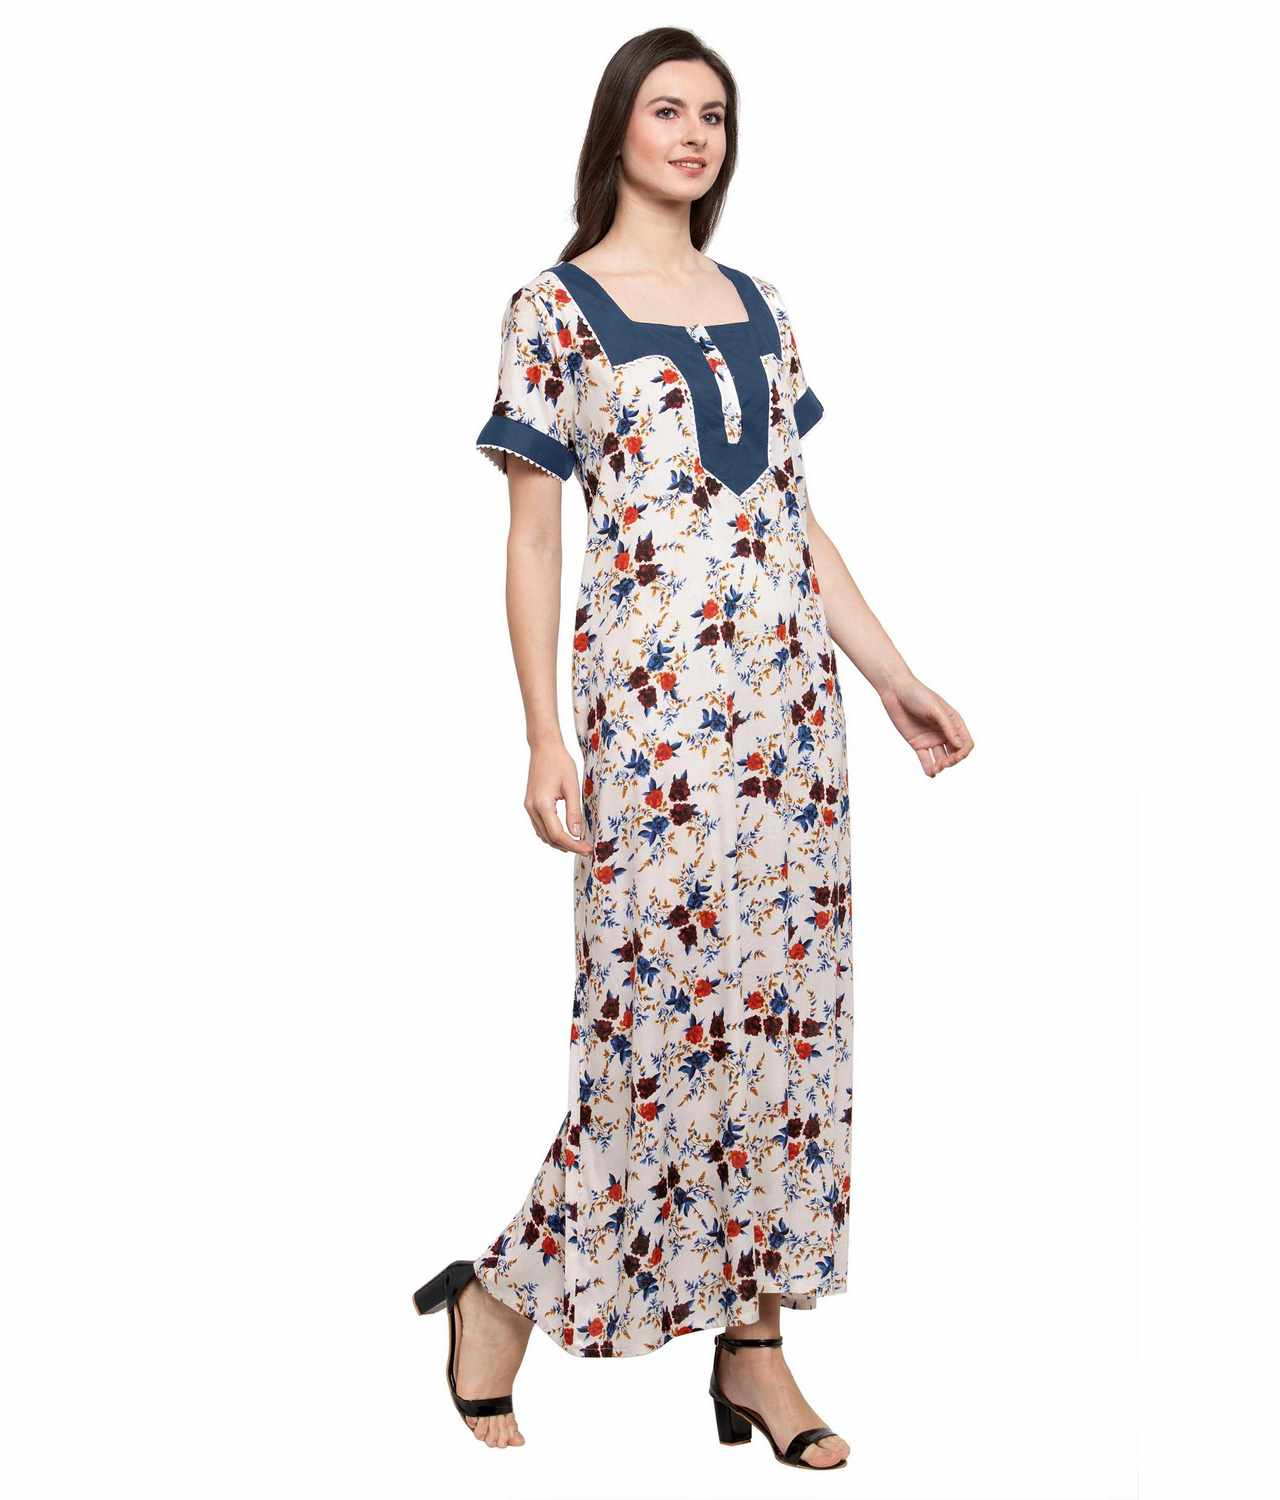 Embellished Square Neck Maxi Night-Gown Nighty in Charcoal Grey:Cream Print